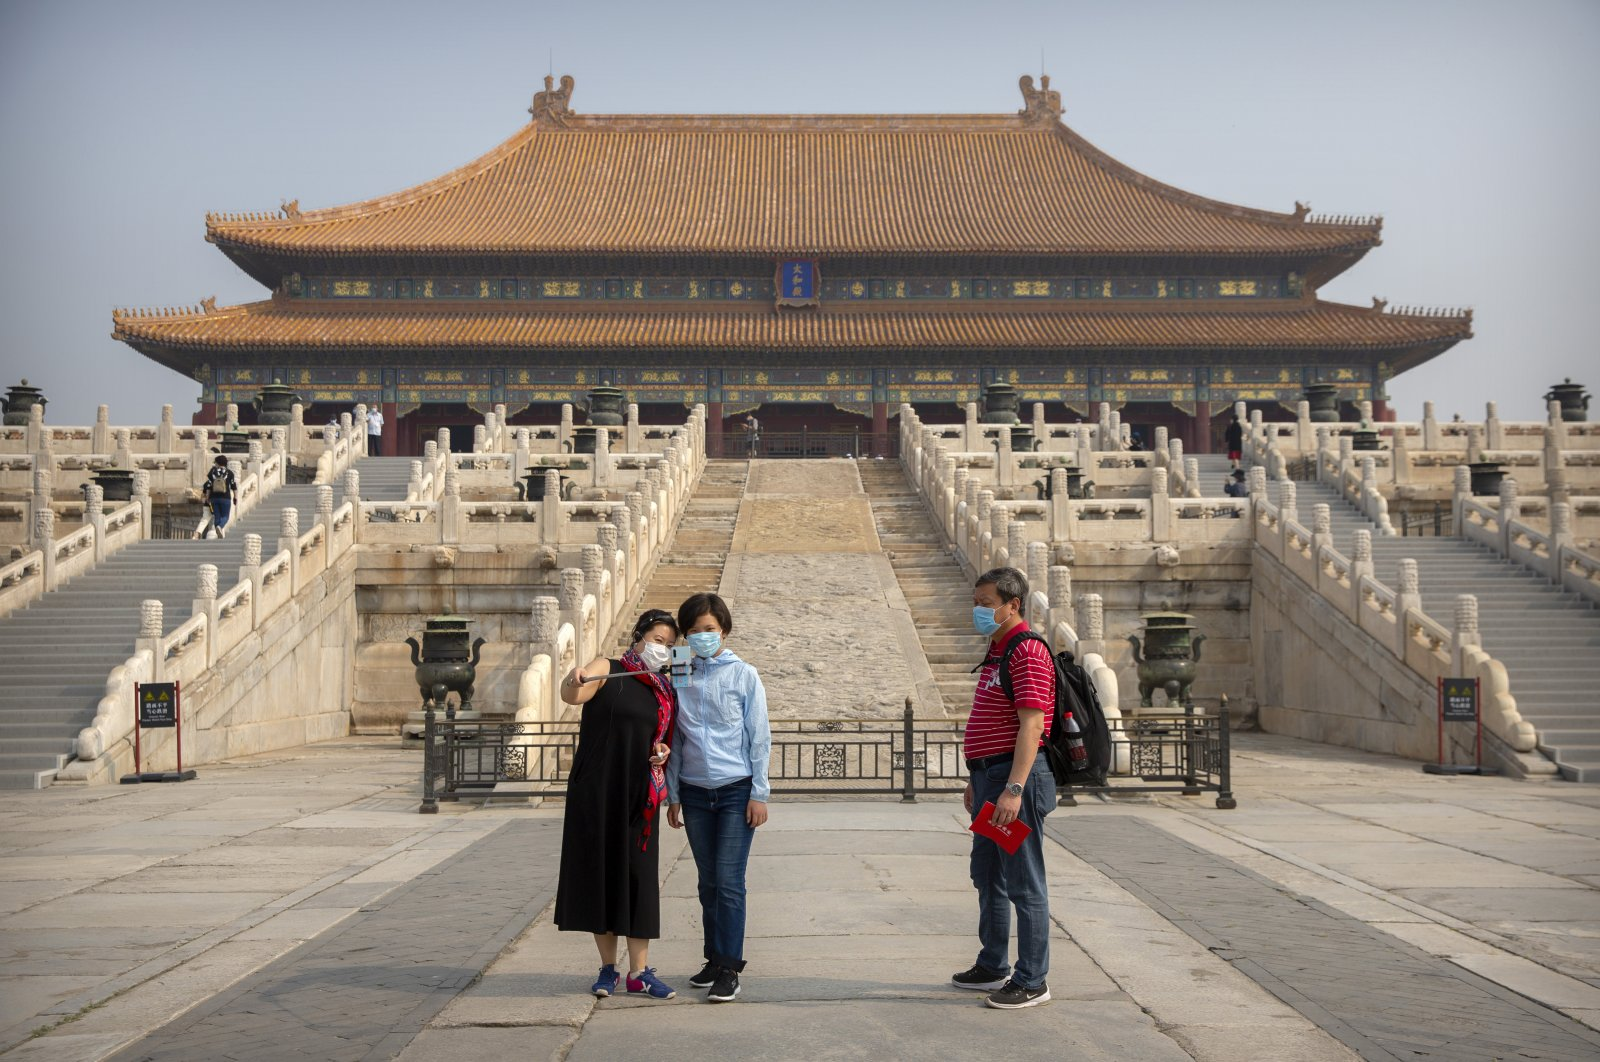 Visitors wearing face masks to protect against the new coronavirus pose for a selfie in the Forbidden City in Beijing, May 1, 2020. (AP Photo)